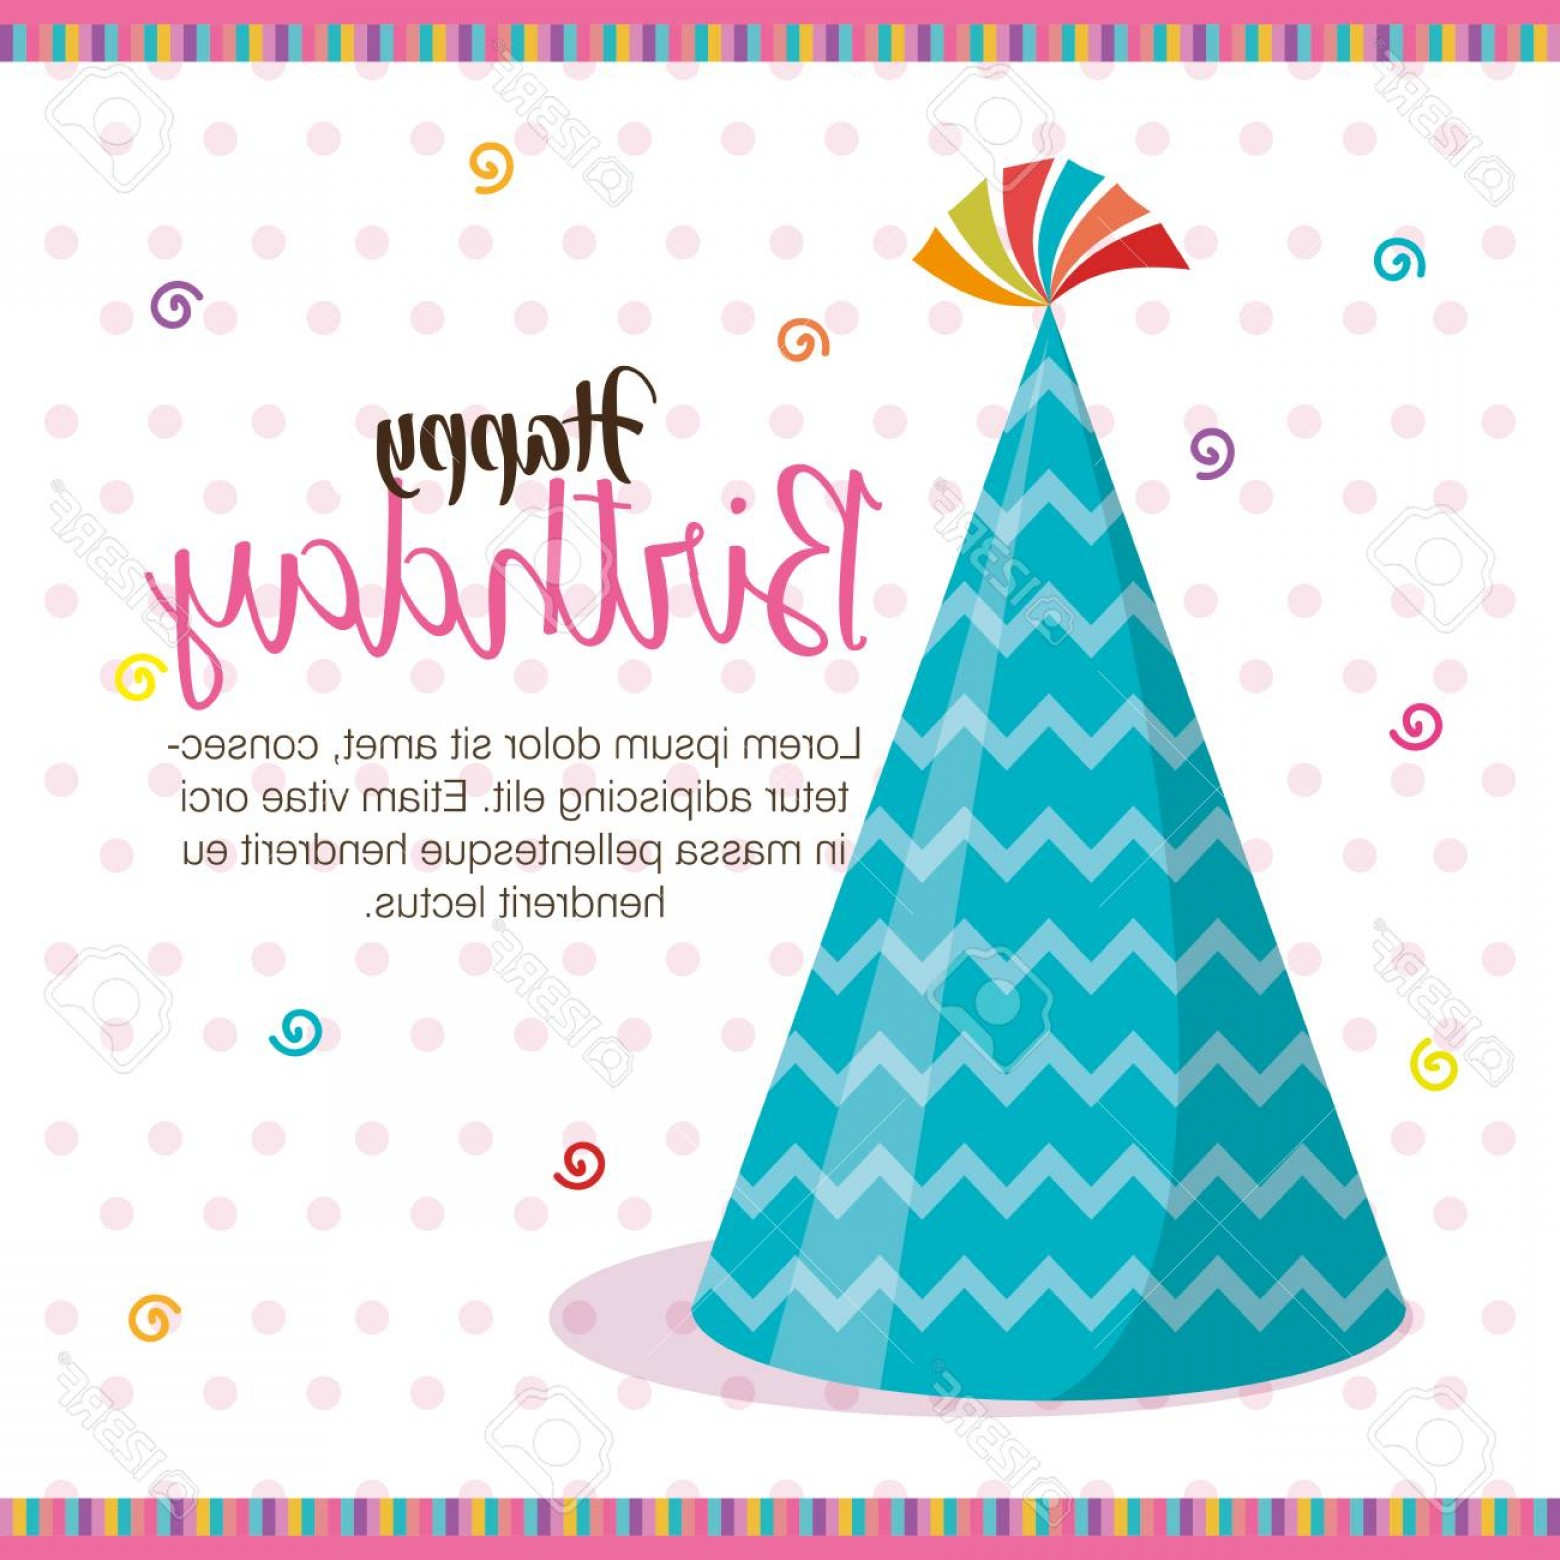 Teal Birthday Hat Vector: Photostock Vector Happy Birthday Hat Celebration Card Vector Illustration Design